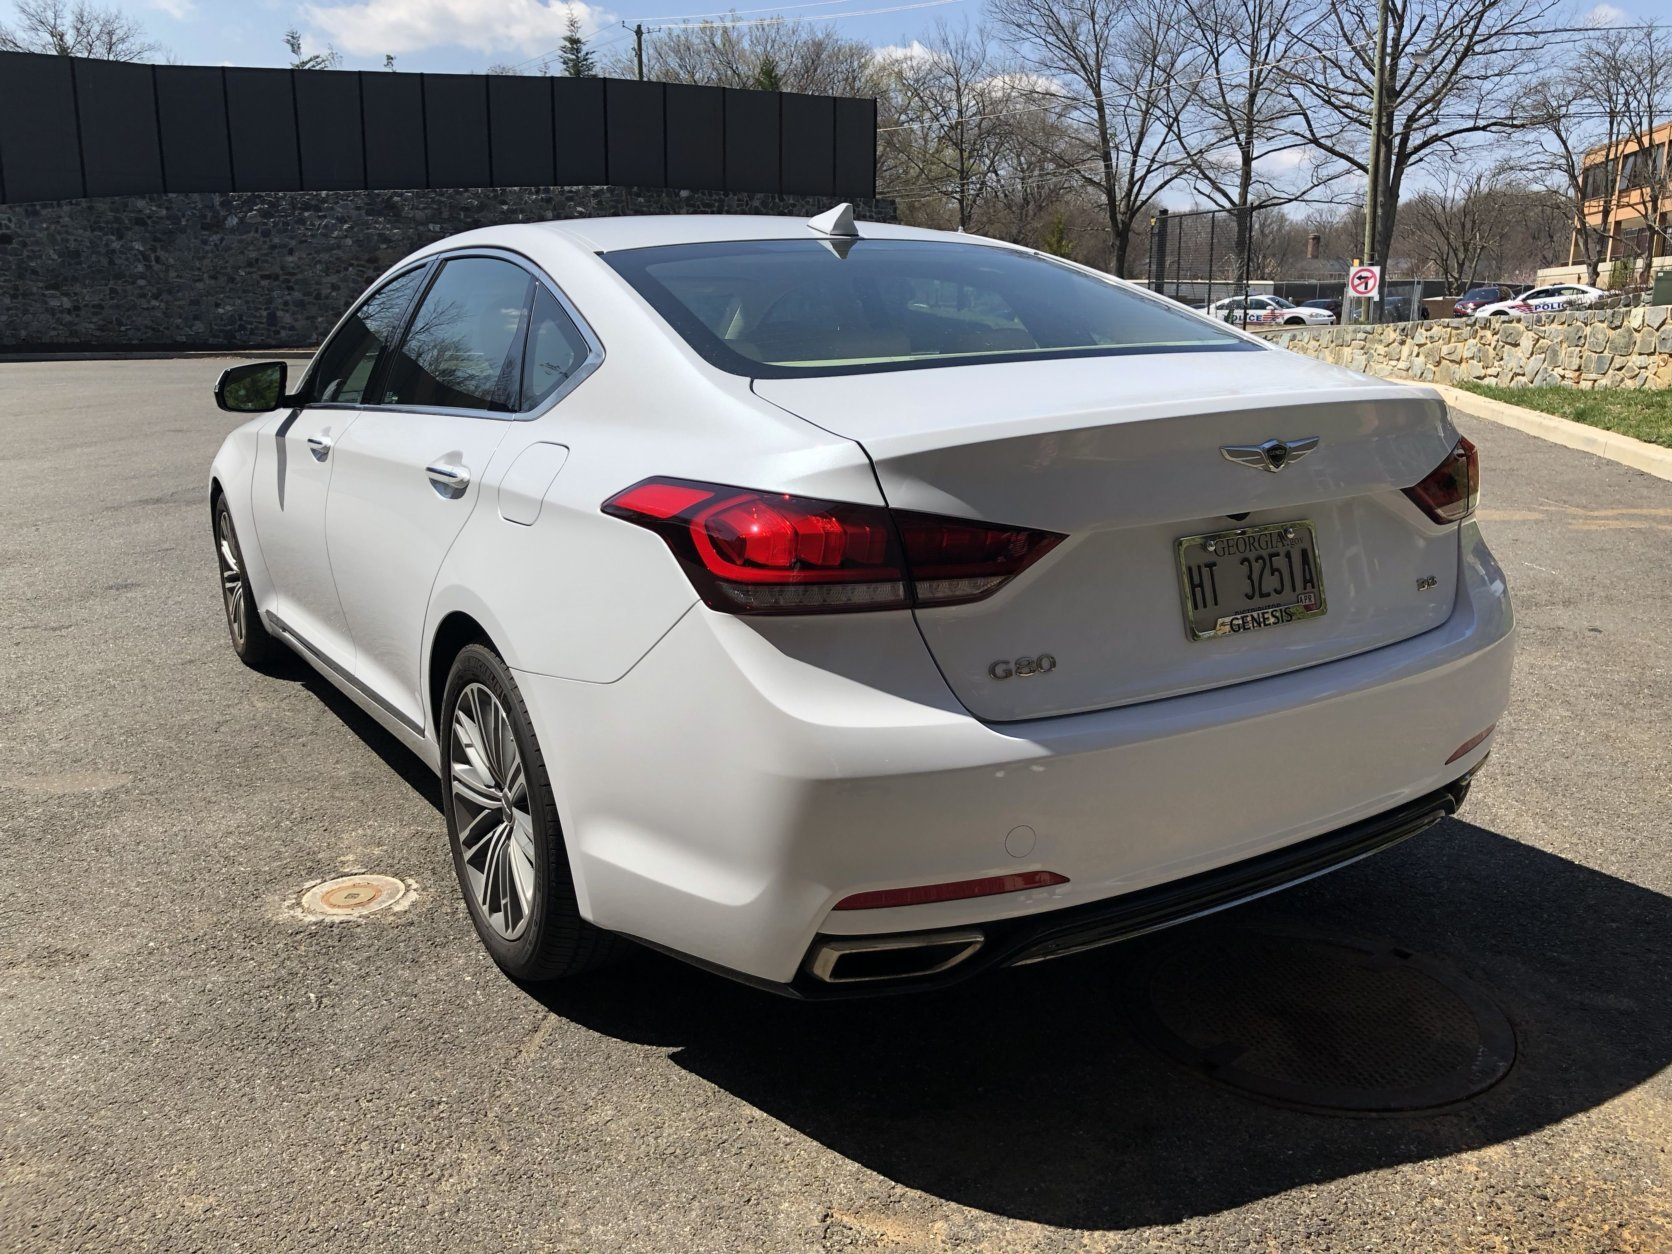 The Genesis G80 is a handsome ride, if not very exciting. Out back dual exhaust tips and some chrome trim pieces dress up the car. (WTOP/Mike Parris)